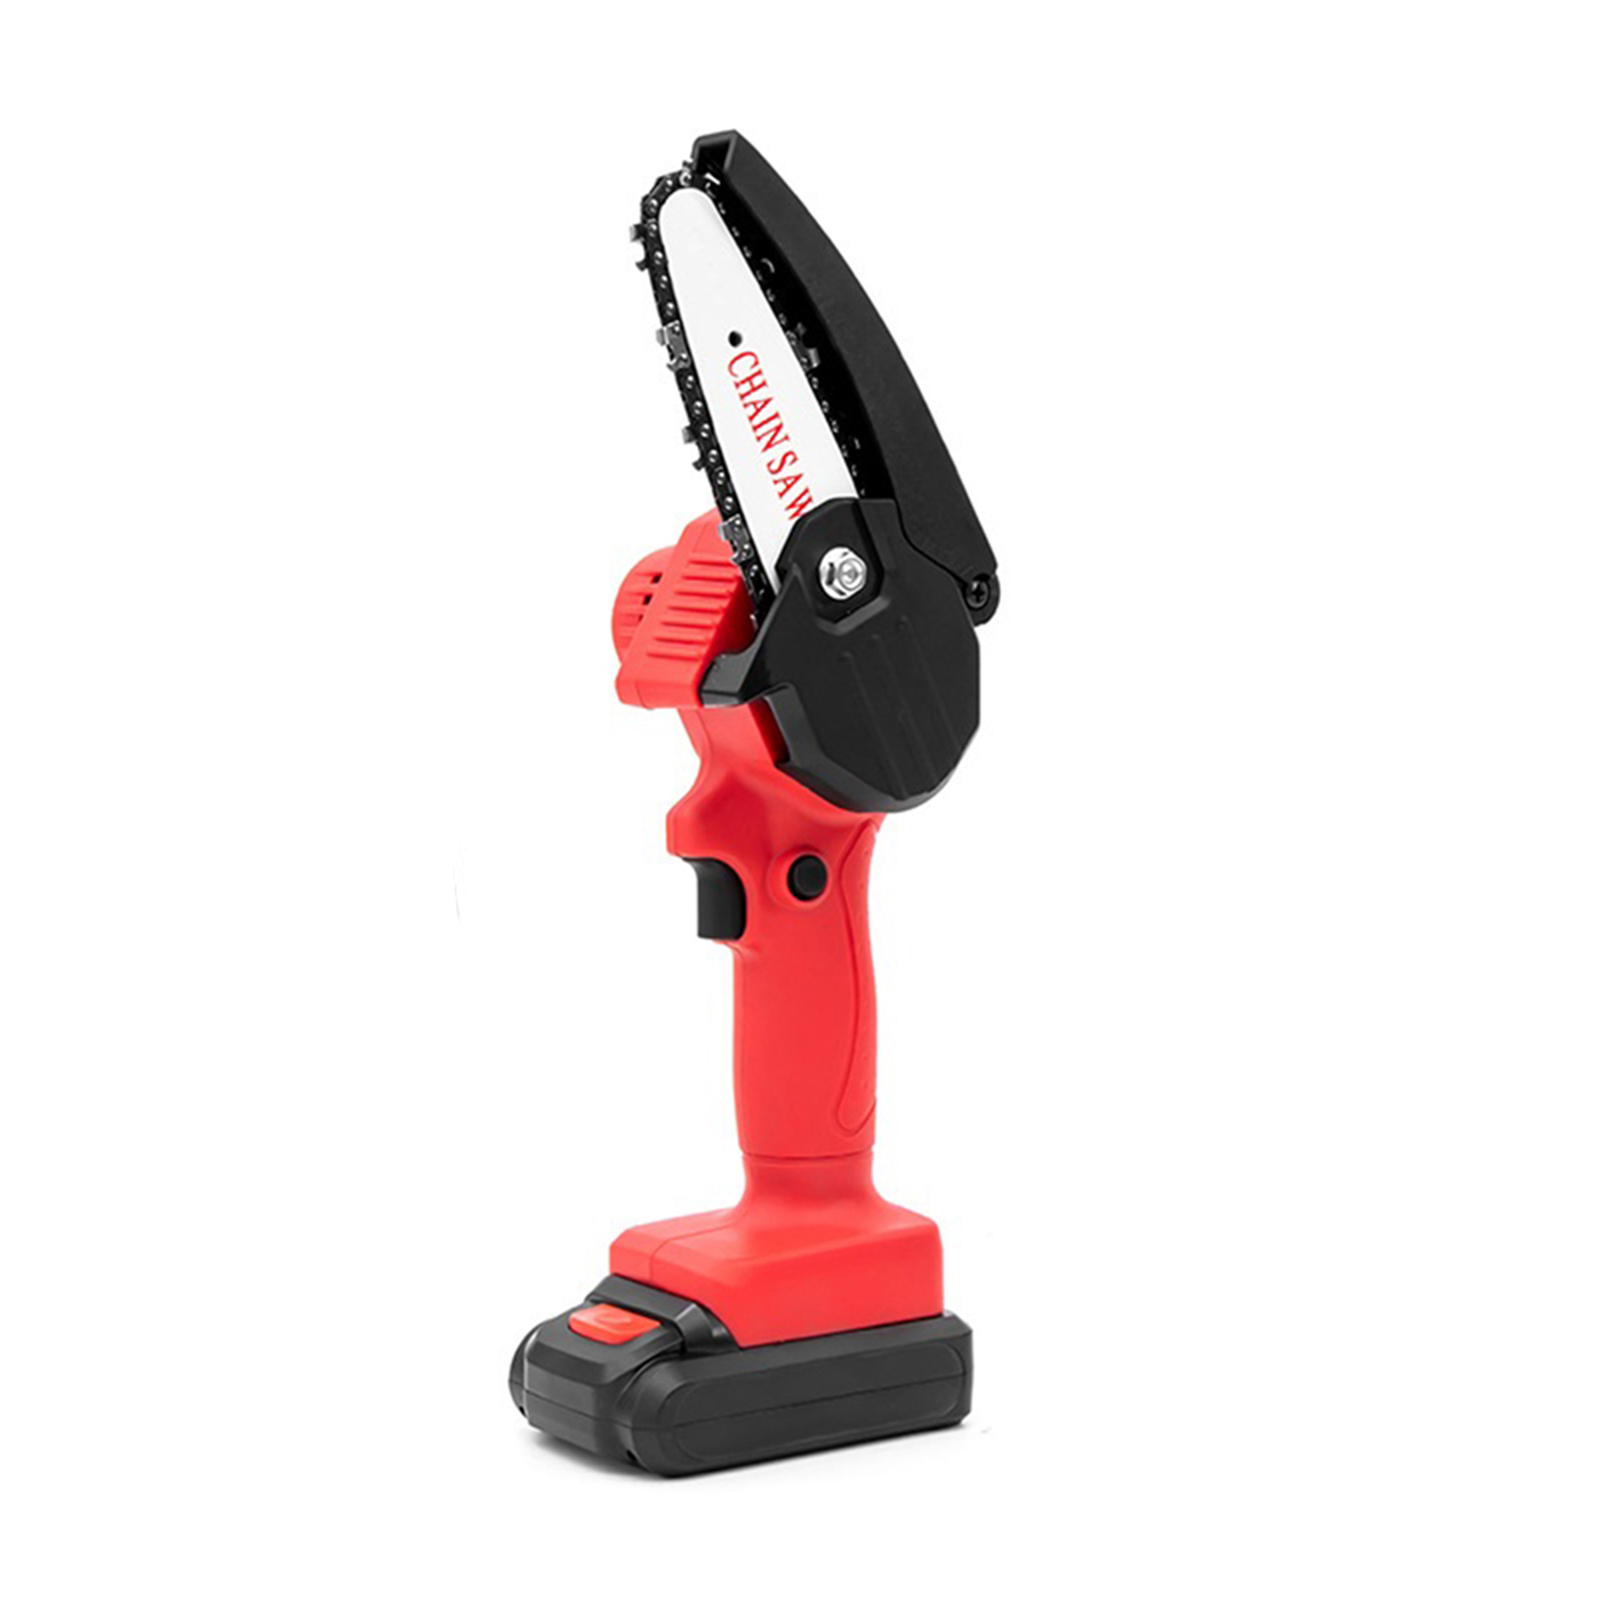 Tools : 220V Rechargeable Handheld Portable Electric Pruning Saw Cordless Mini Chainsaw Small Wood Splitting Chainsaw